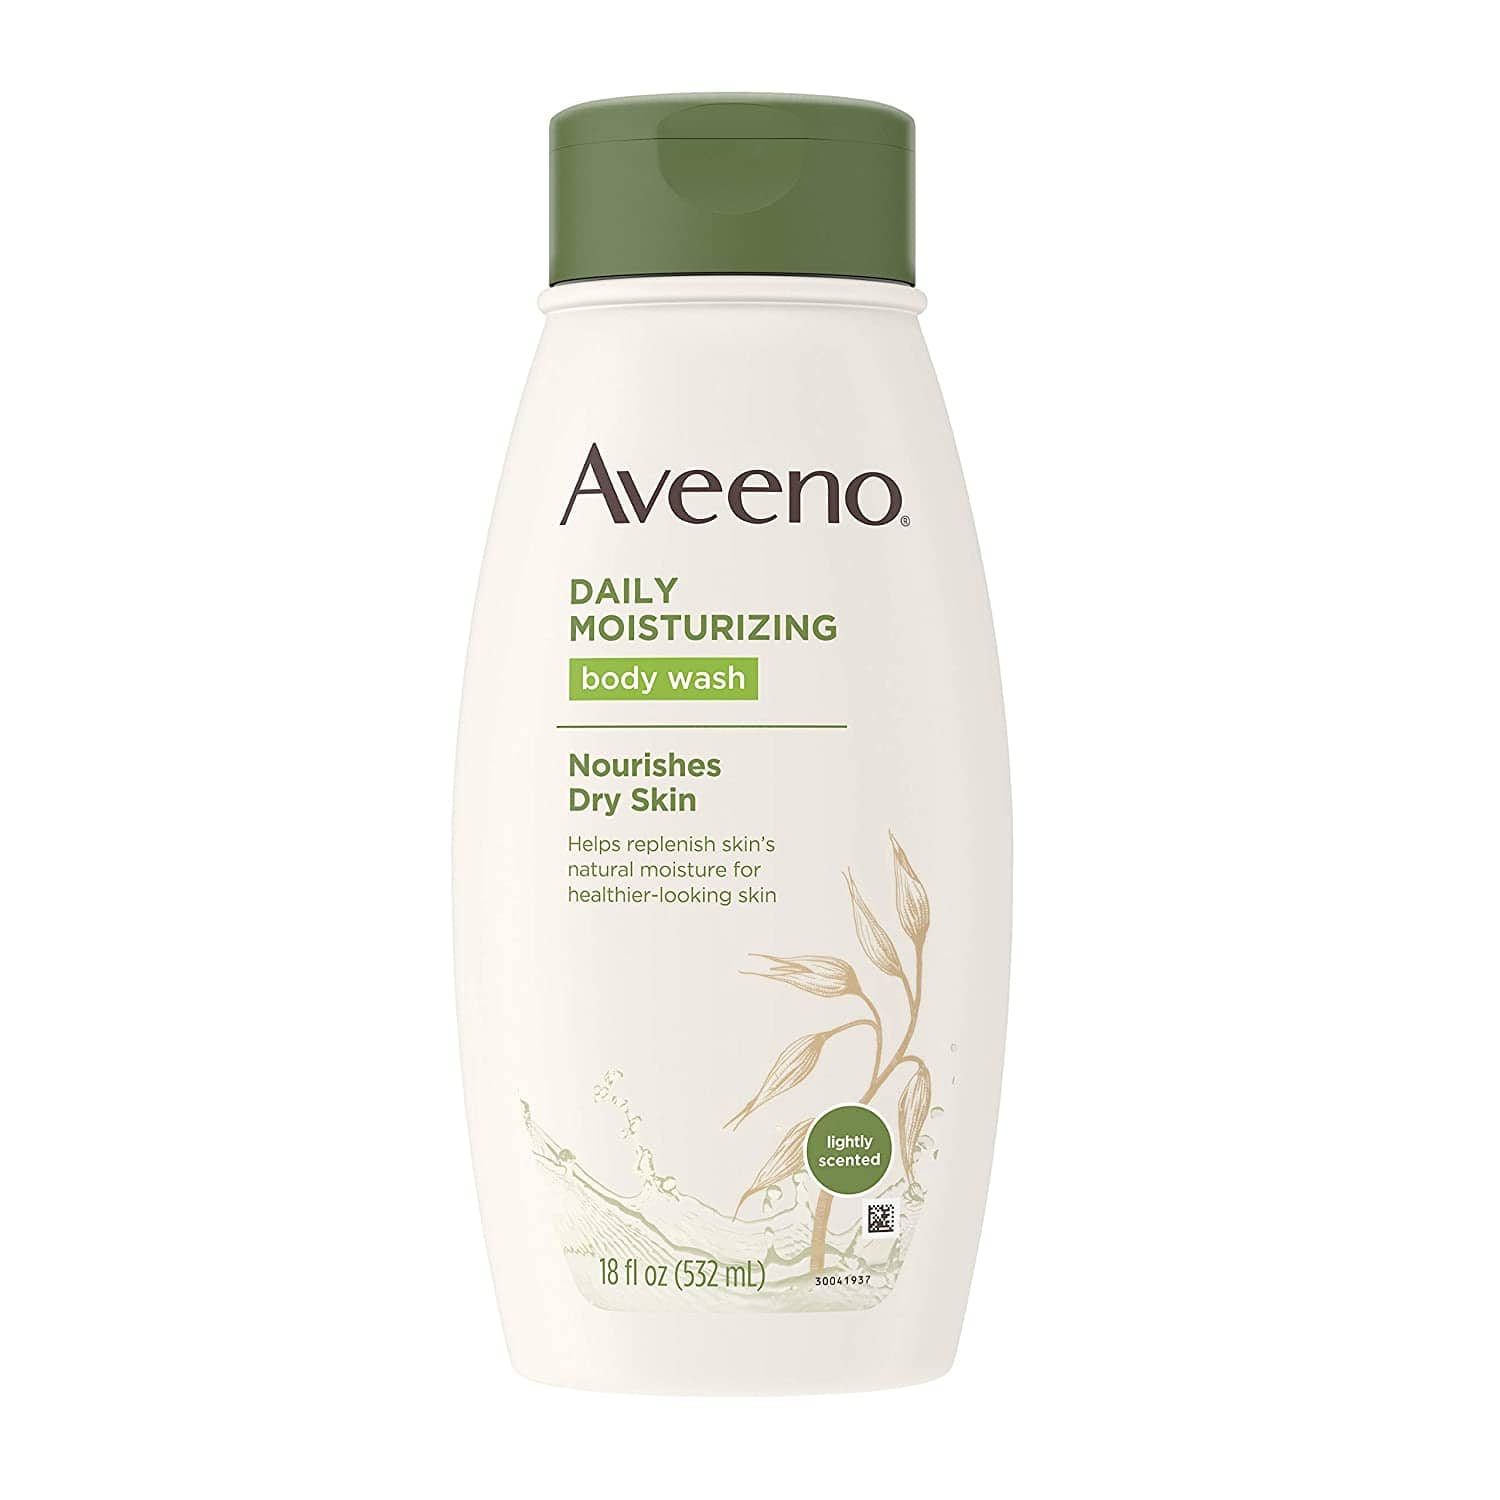 18-Oz Aveeno Daily Moisturizing Body Wash for Dry Skin